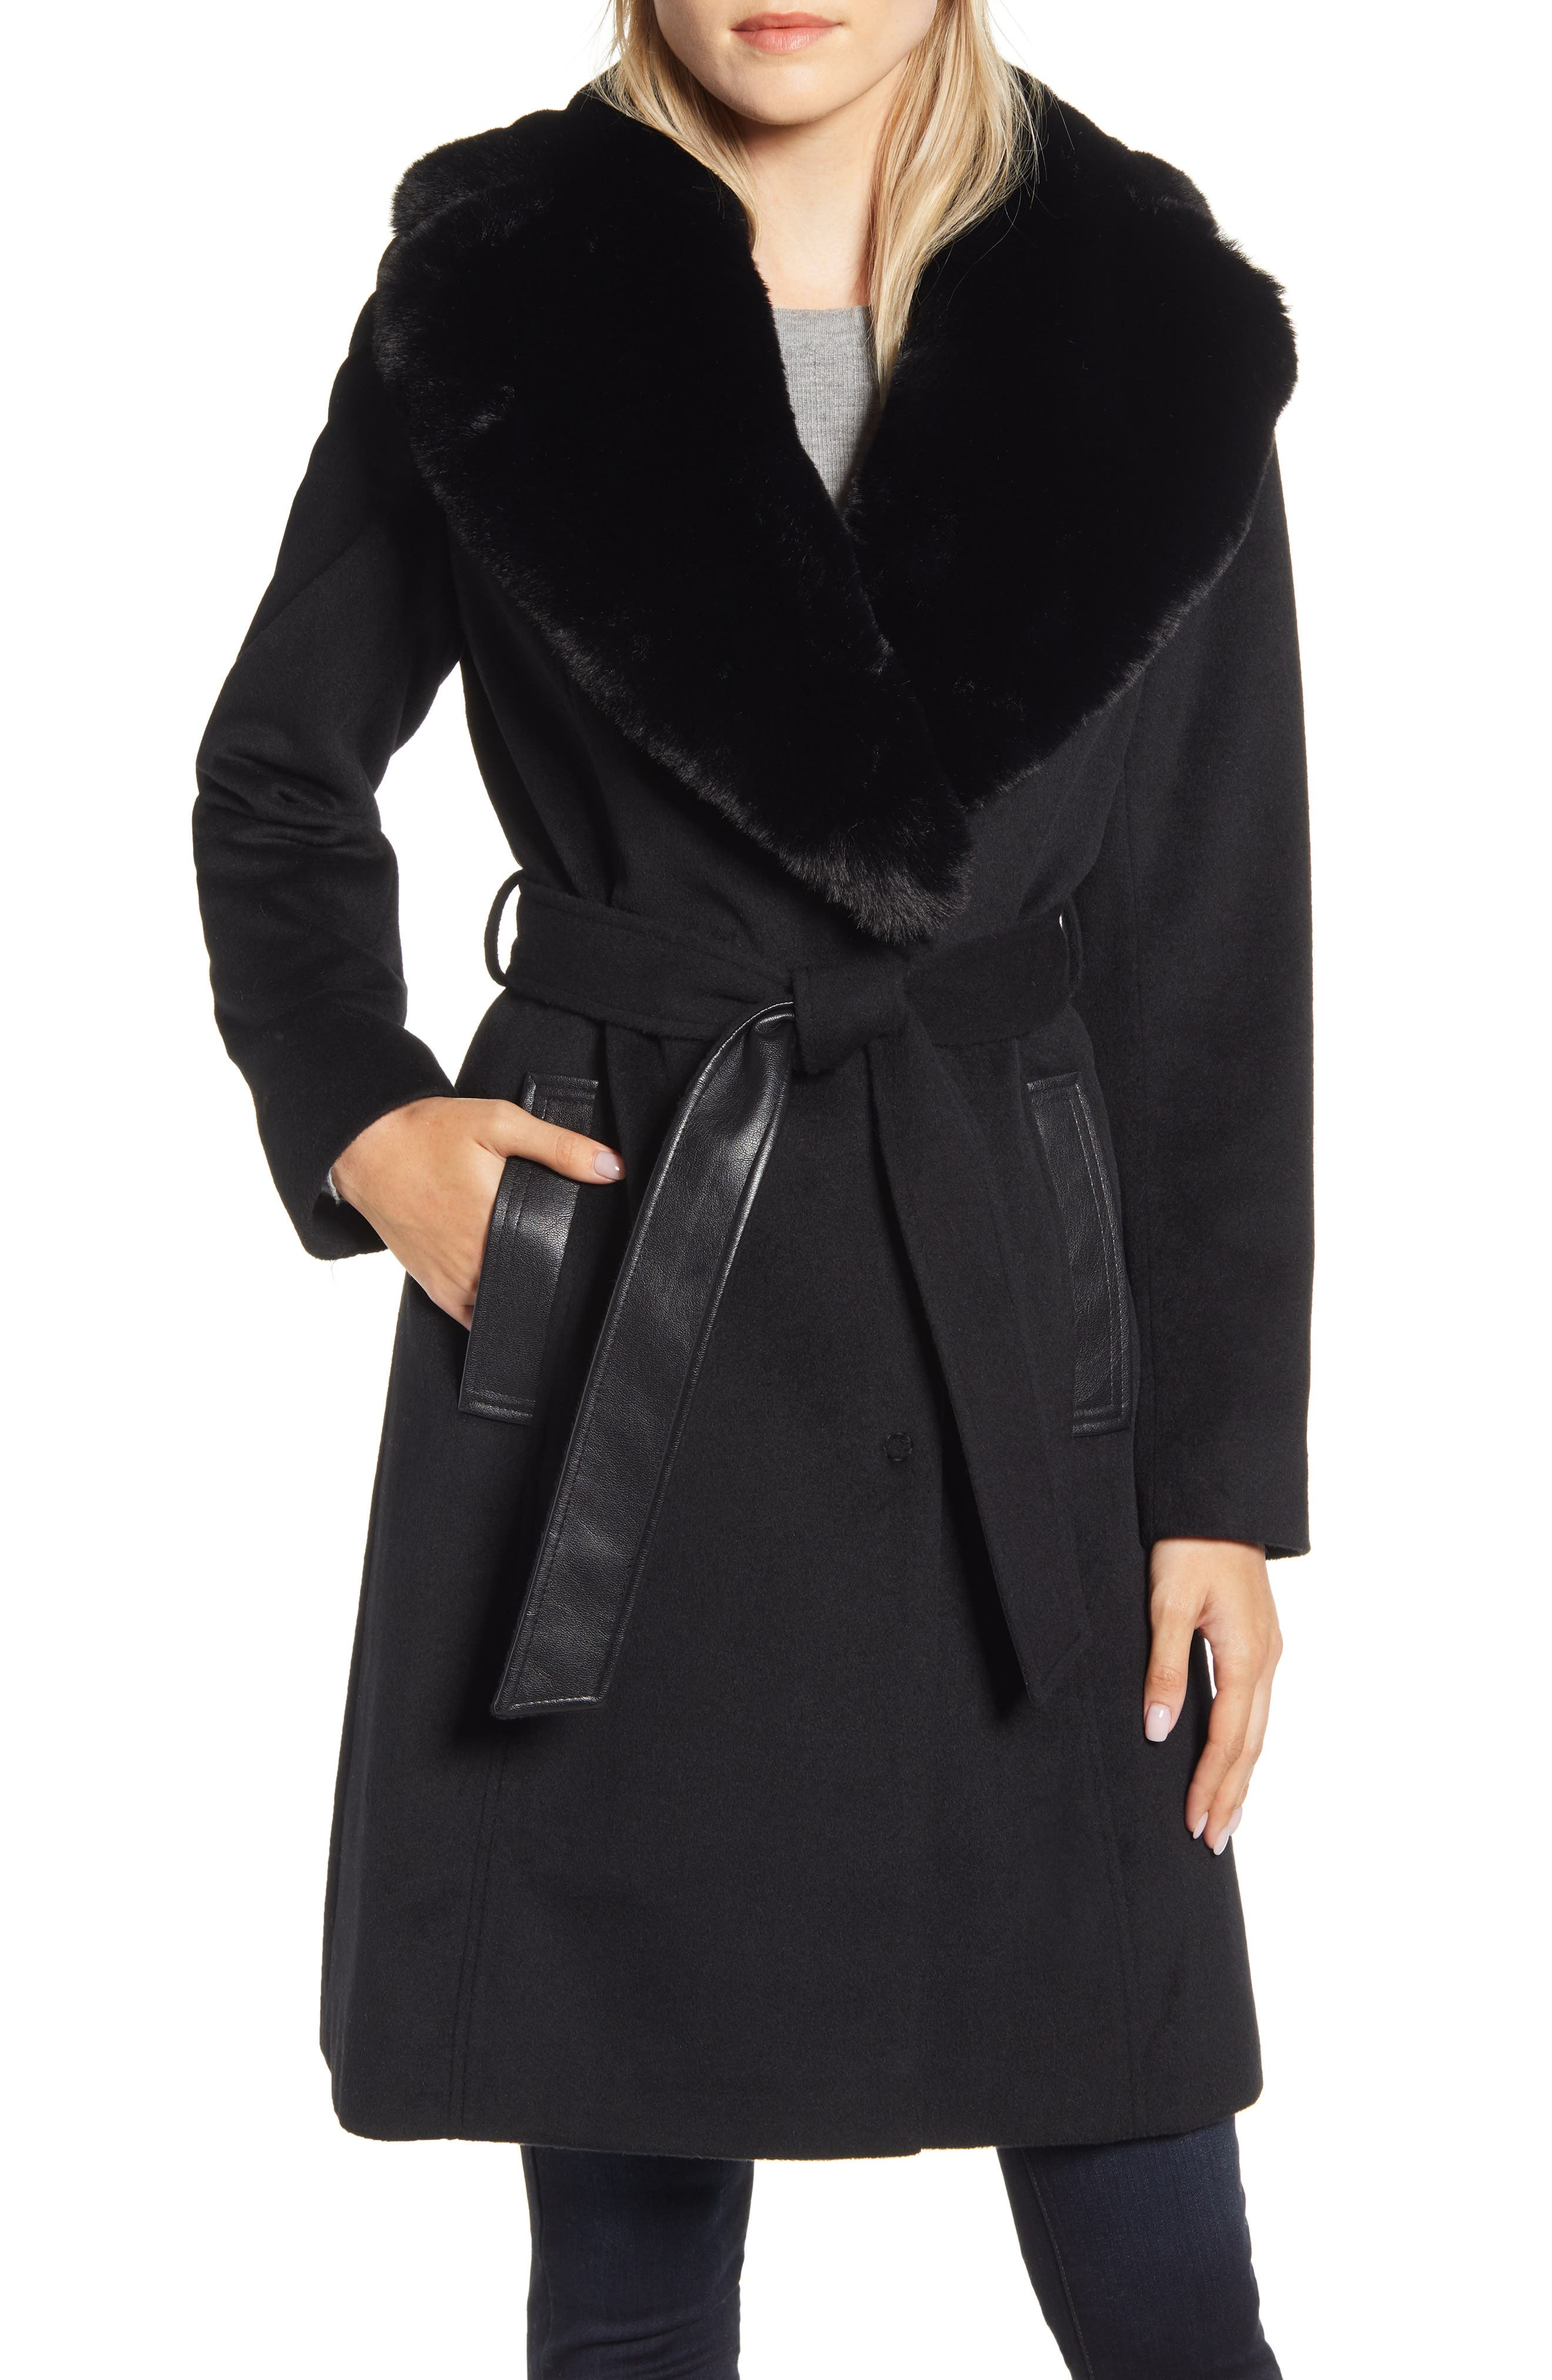 Via Spiga Faux Leather & Wool Blend Coat with Faux Fur Collar